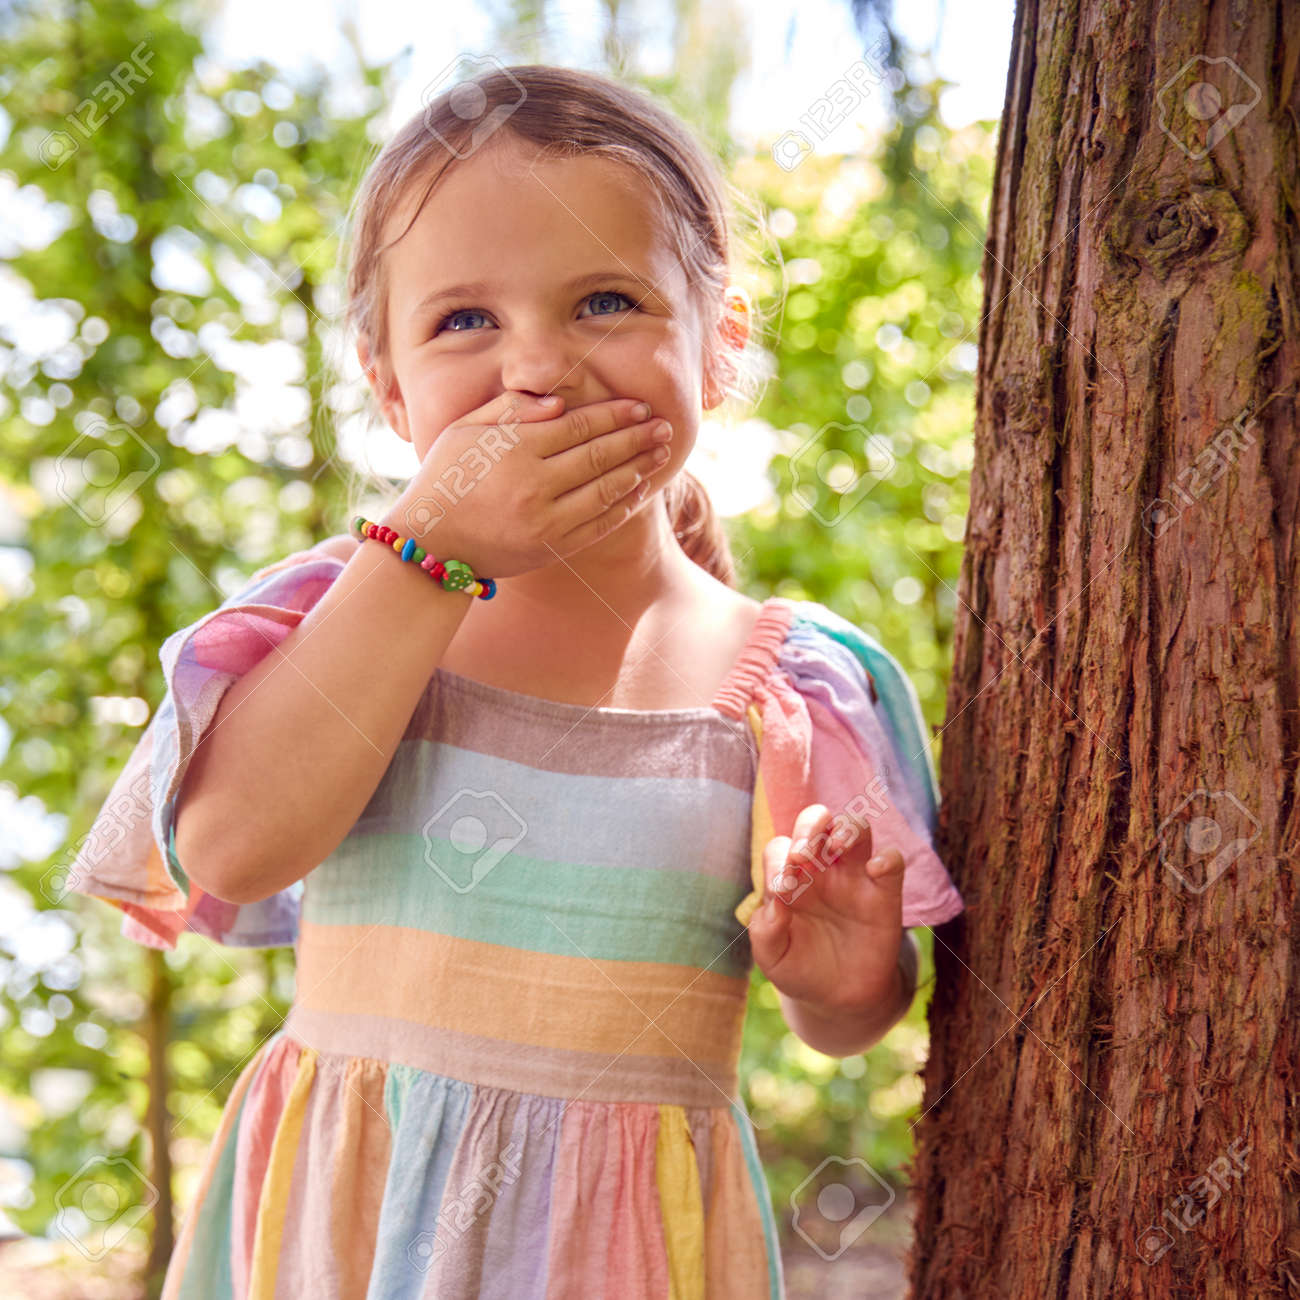 Smiling Young Girl Playing Hide And Seek Behind Tree In Garden - 172365304